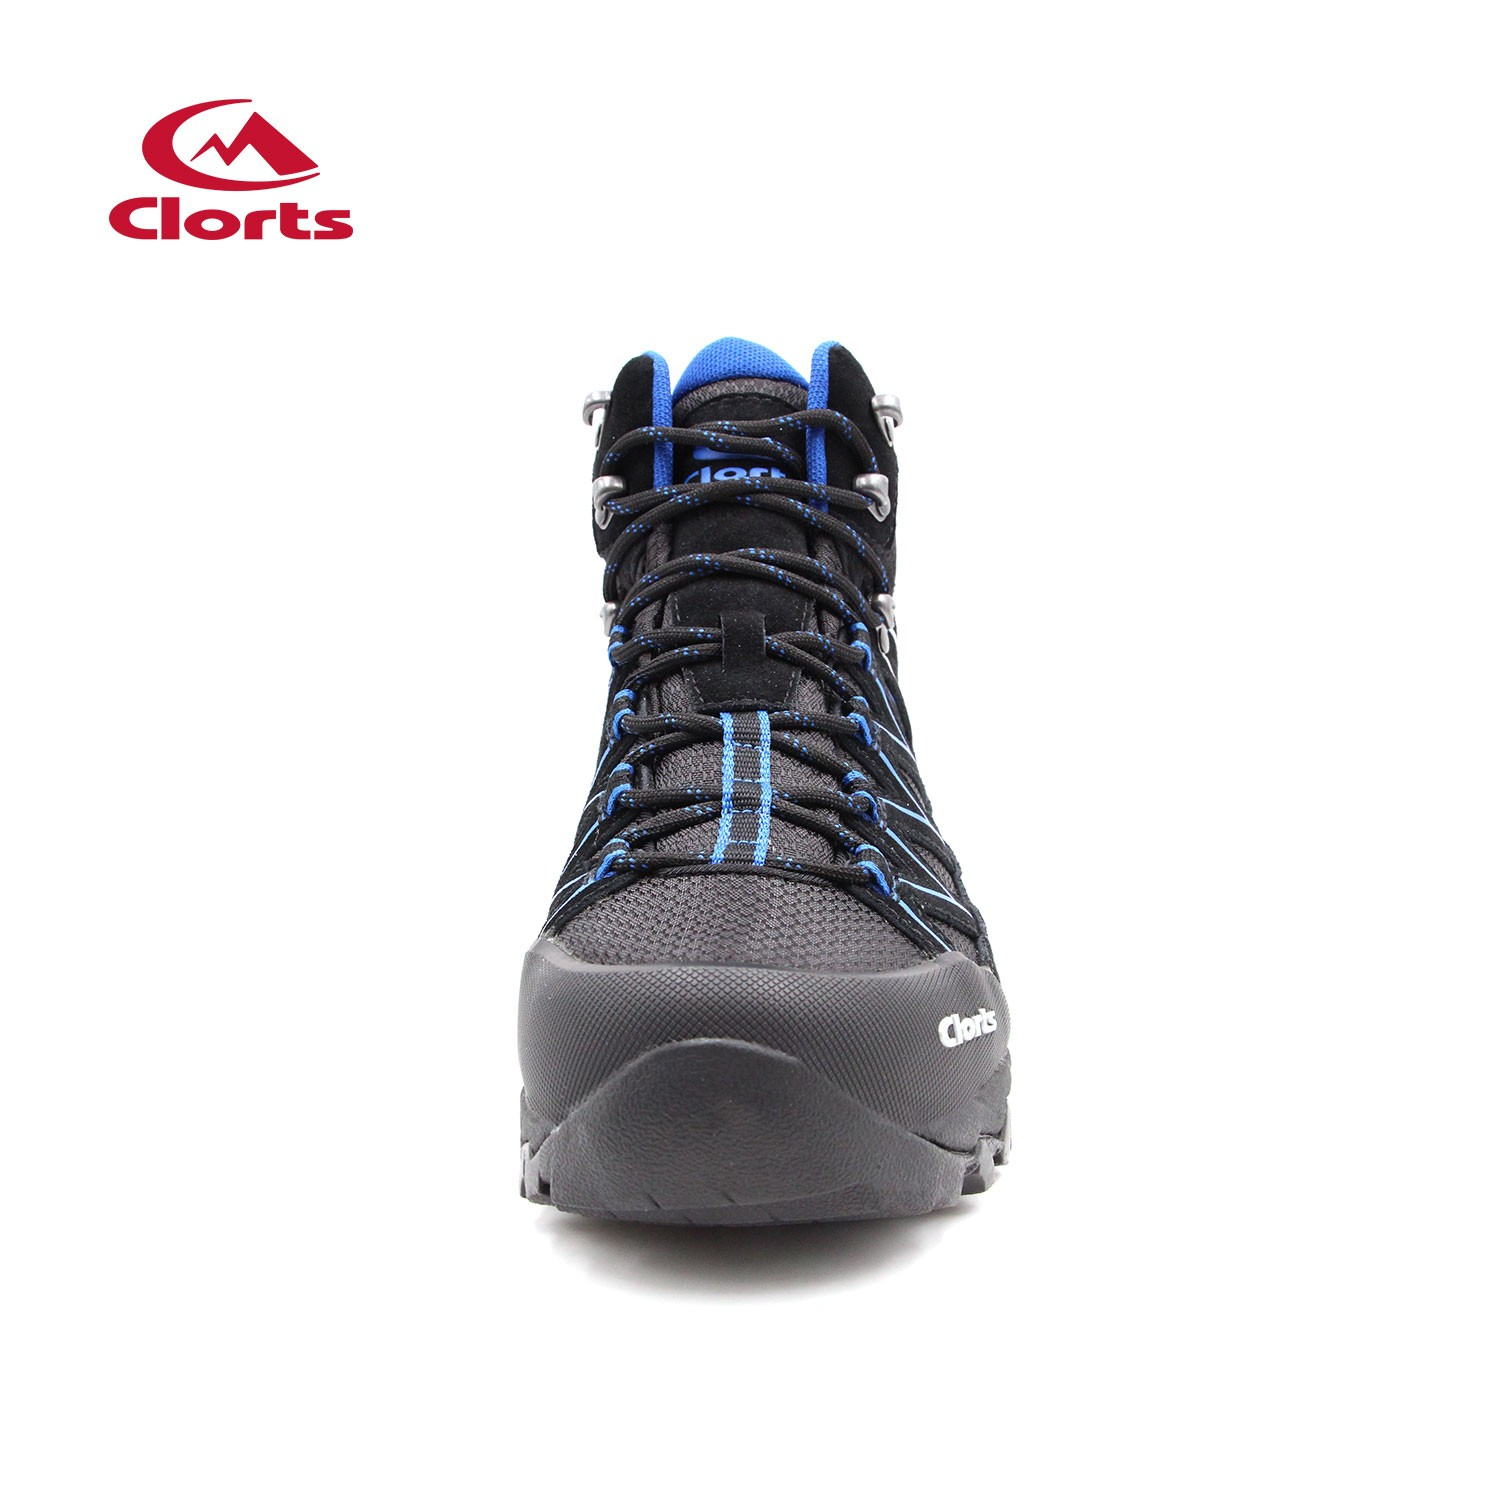 Clorts Mens Backpackiing Waterproof Hiking Boots Black Manufacturers, Clorts Mens Backpackiing Waterproof Hiking Boots Black Factory, Supply Clorts Mens Backpackiing Waterproof Hiking Boots Black